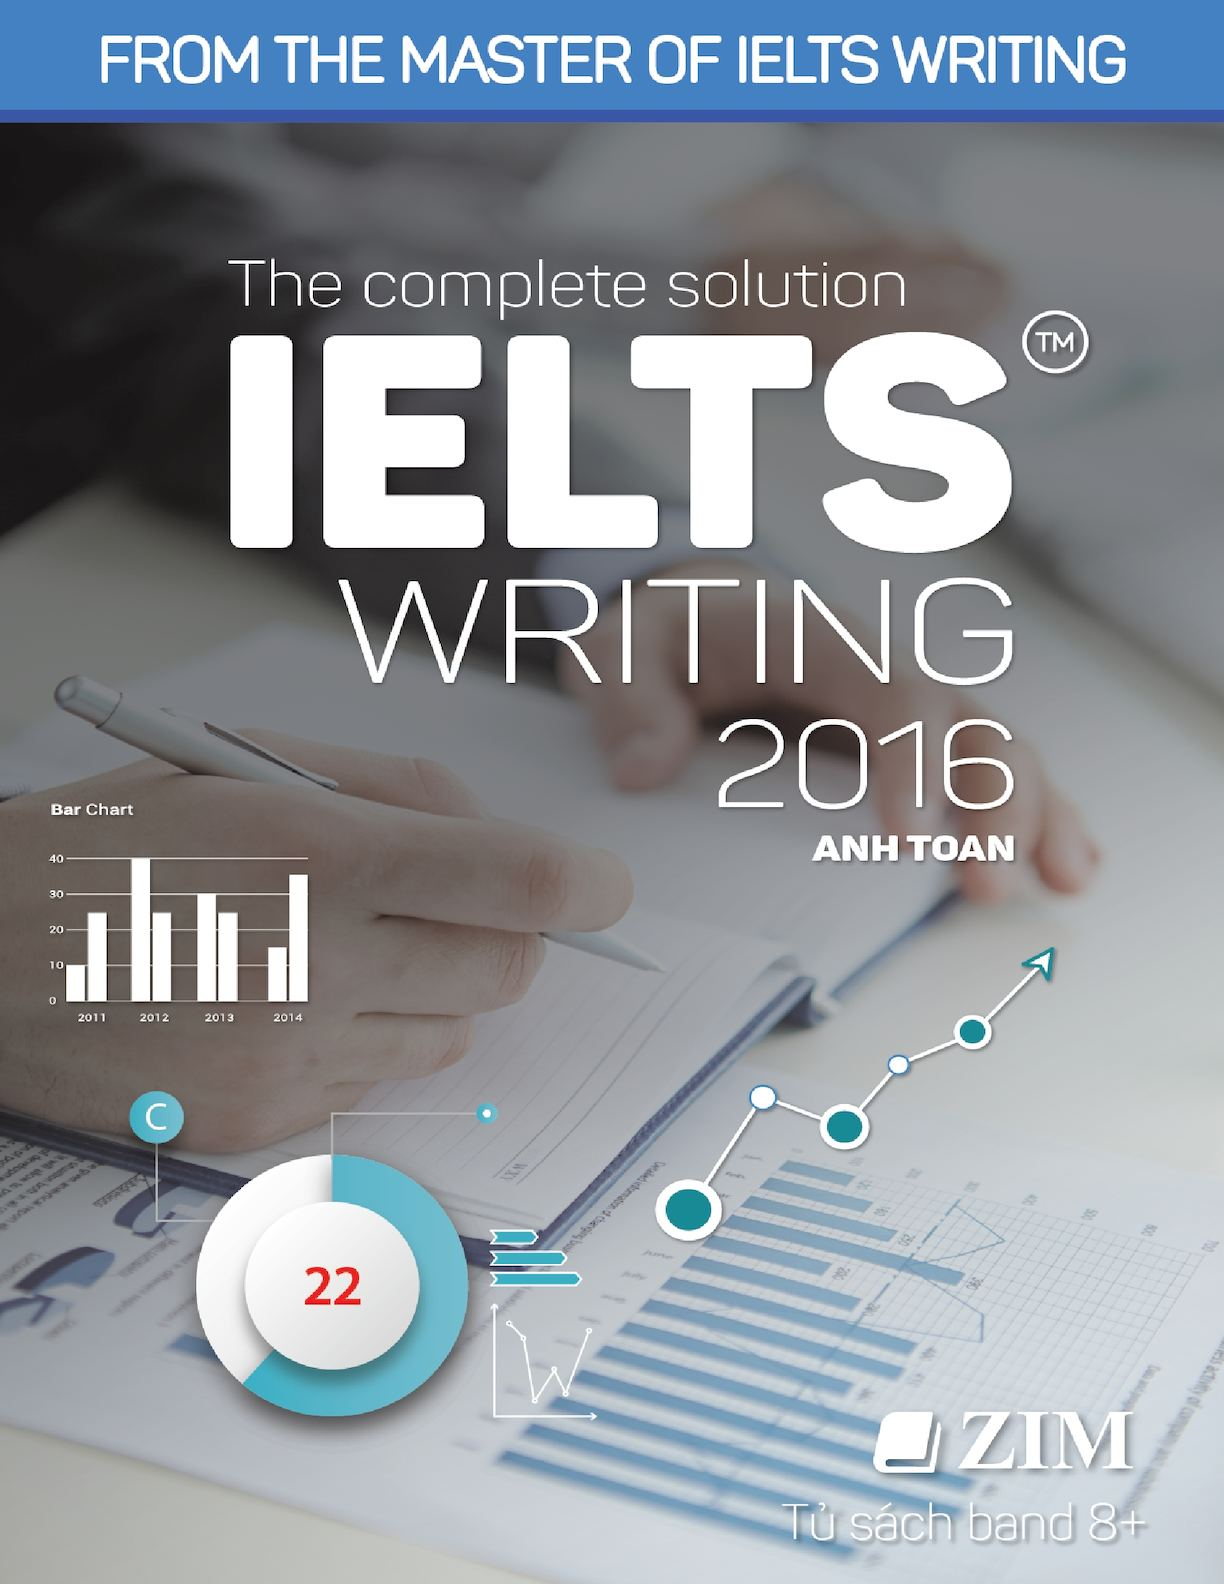 ielts essay crime in cities is out of control 91 121 113 106 ielts essay crime in cities is out of control